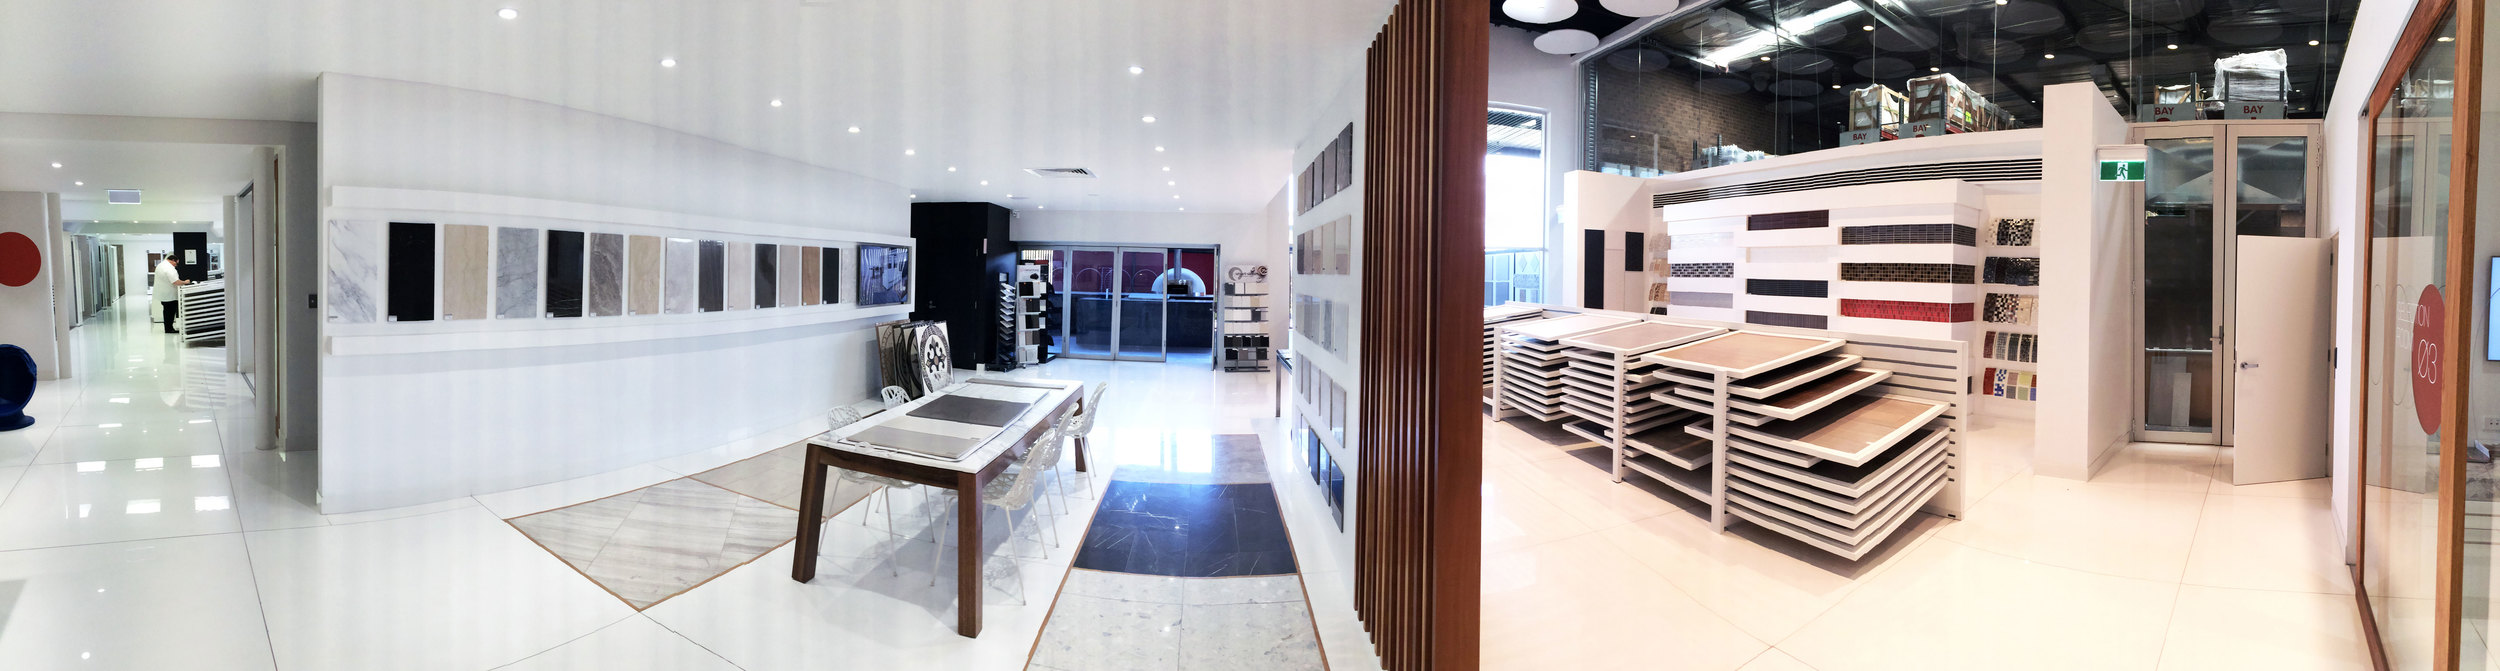 The showroom seamlessly transitions from indoor to outdoortiling options